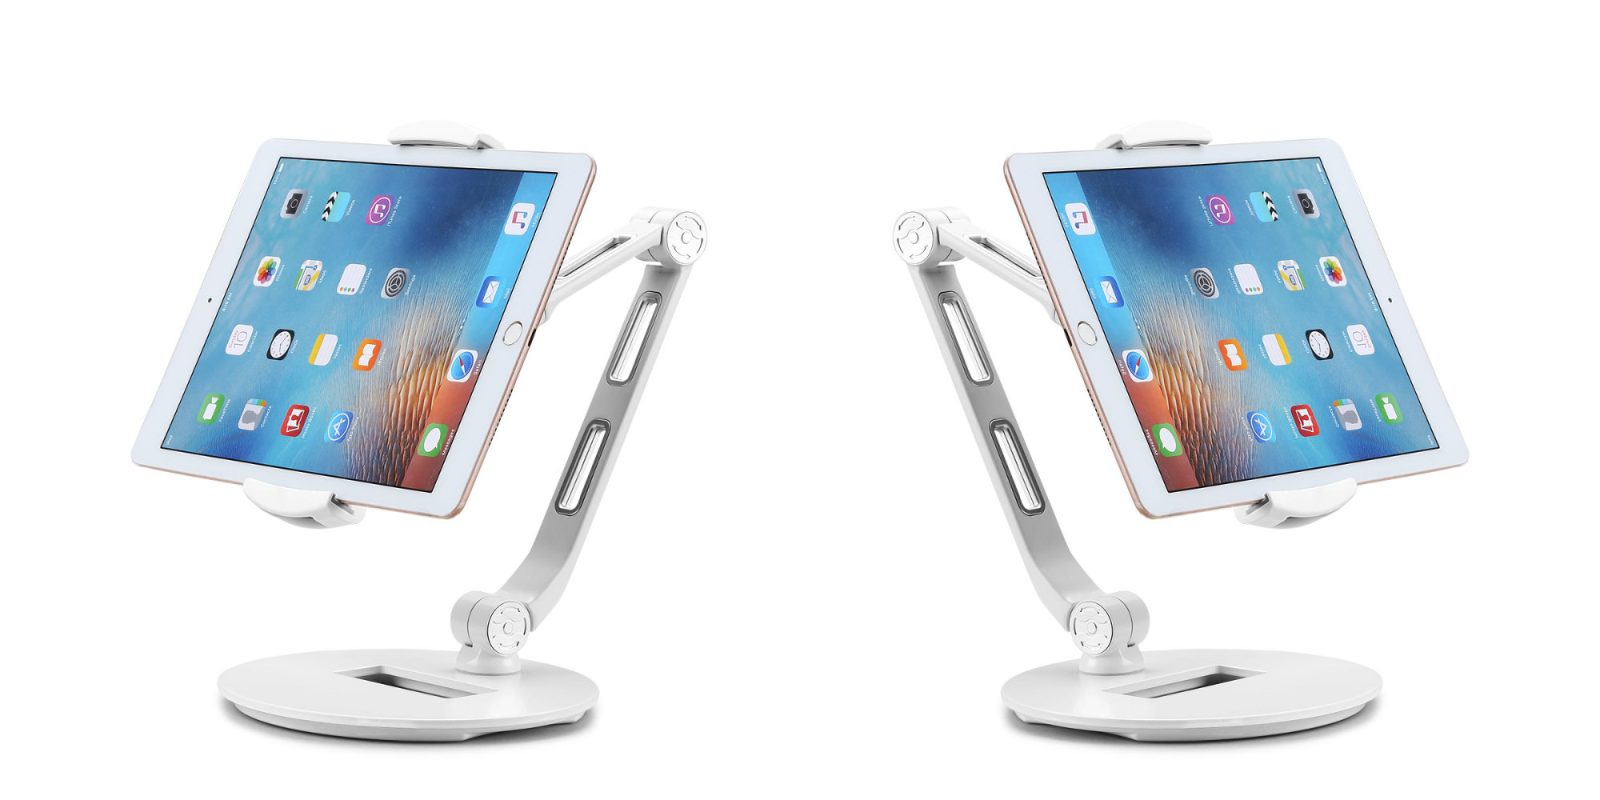 Prep for macOS Catalina's Sidecar with this aluminum iPad mount: $20 (40% off)